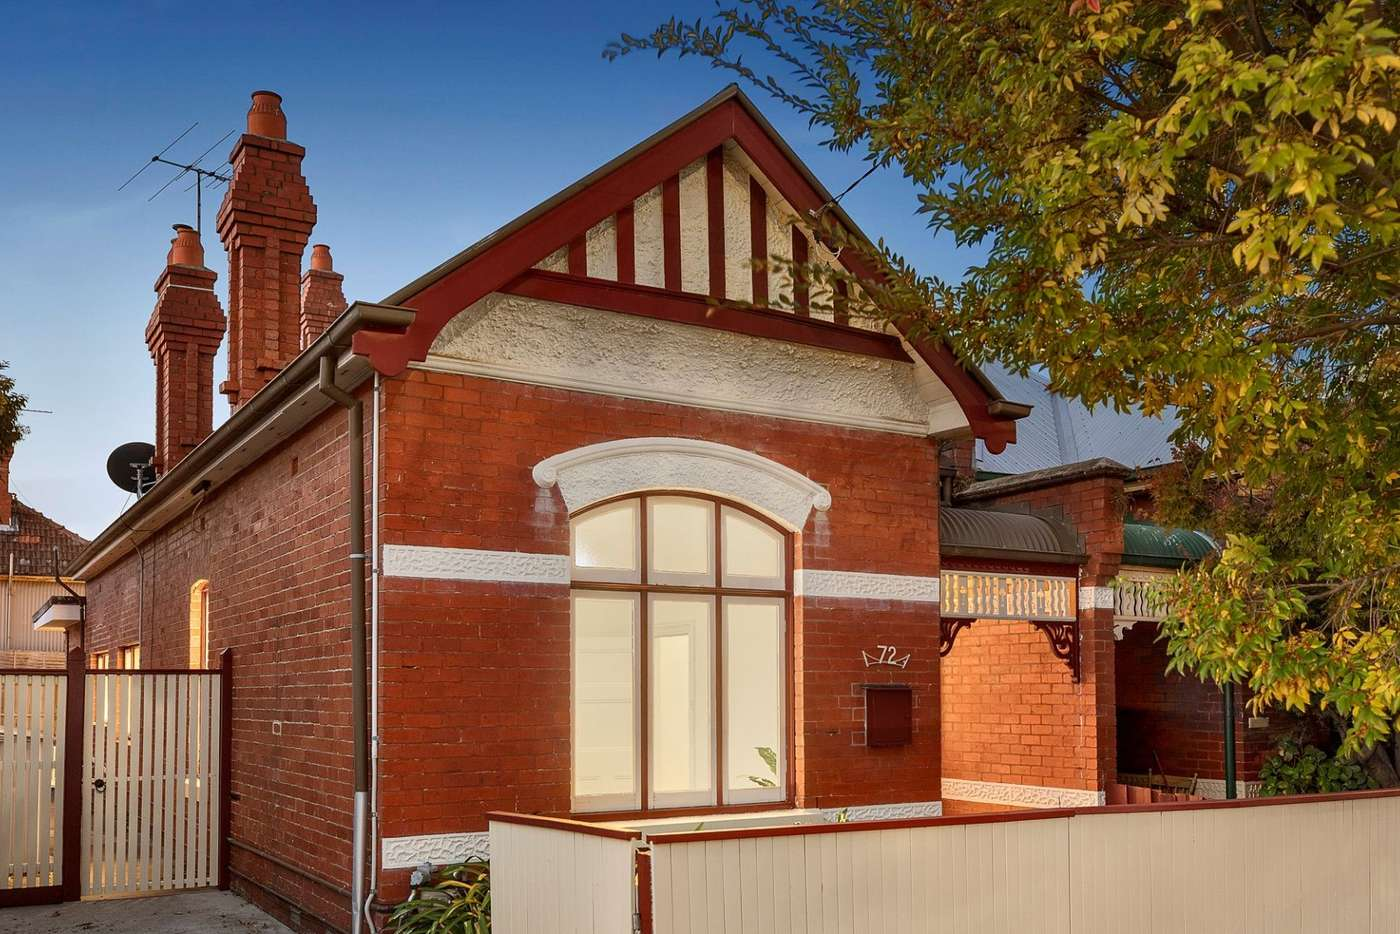 Main view of Homely house listing, 72 Octavia St, St Kilda VIC 3182